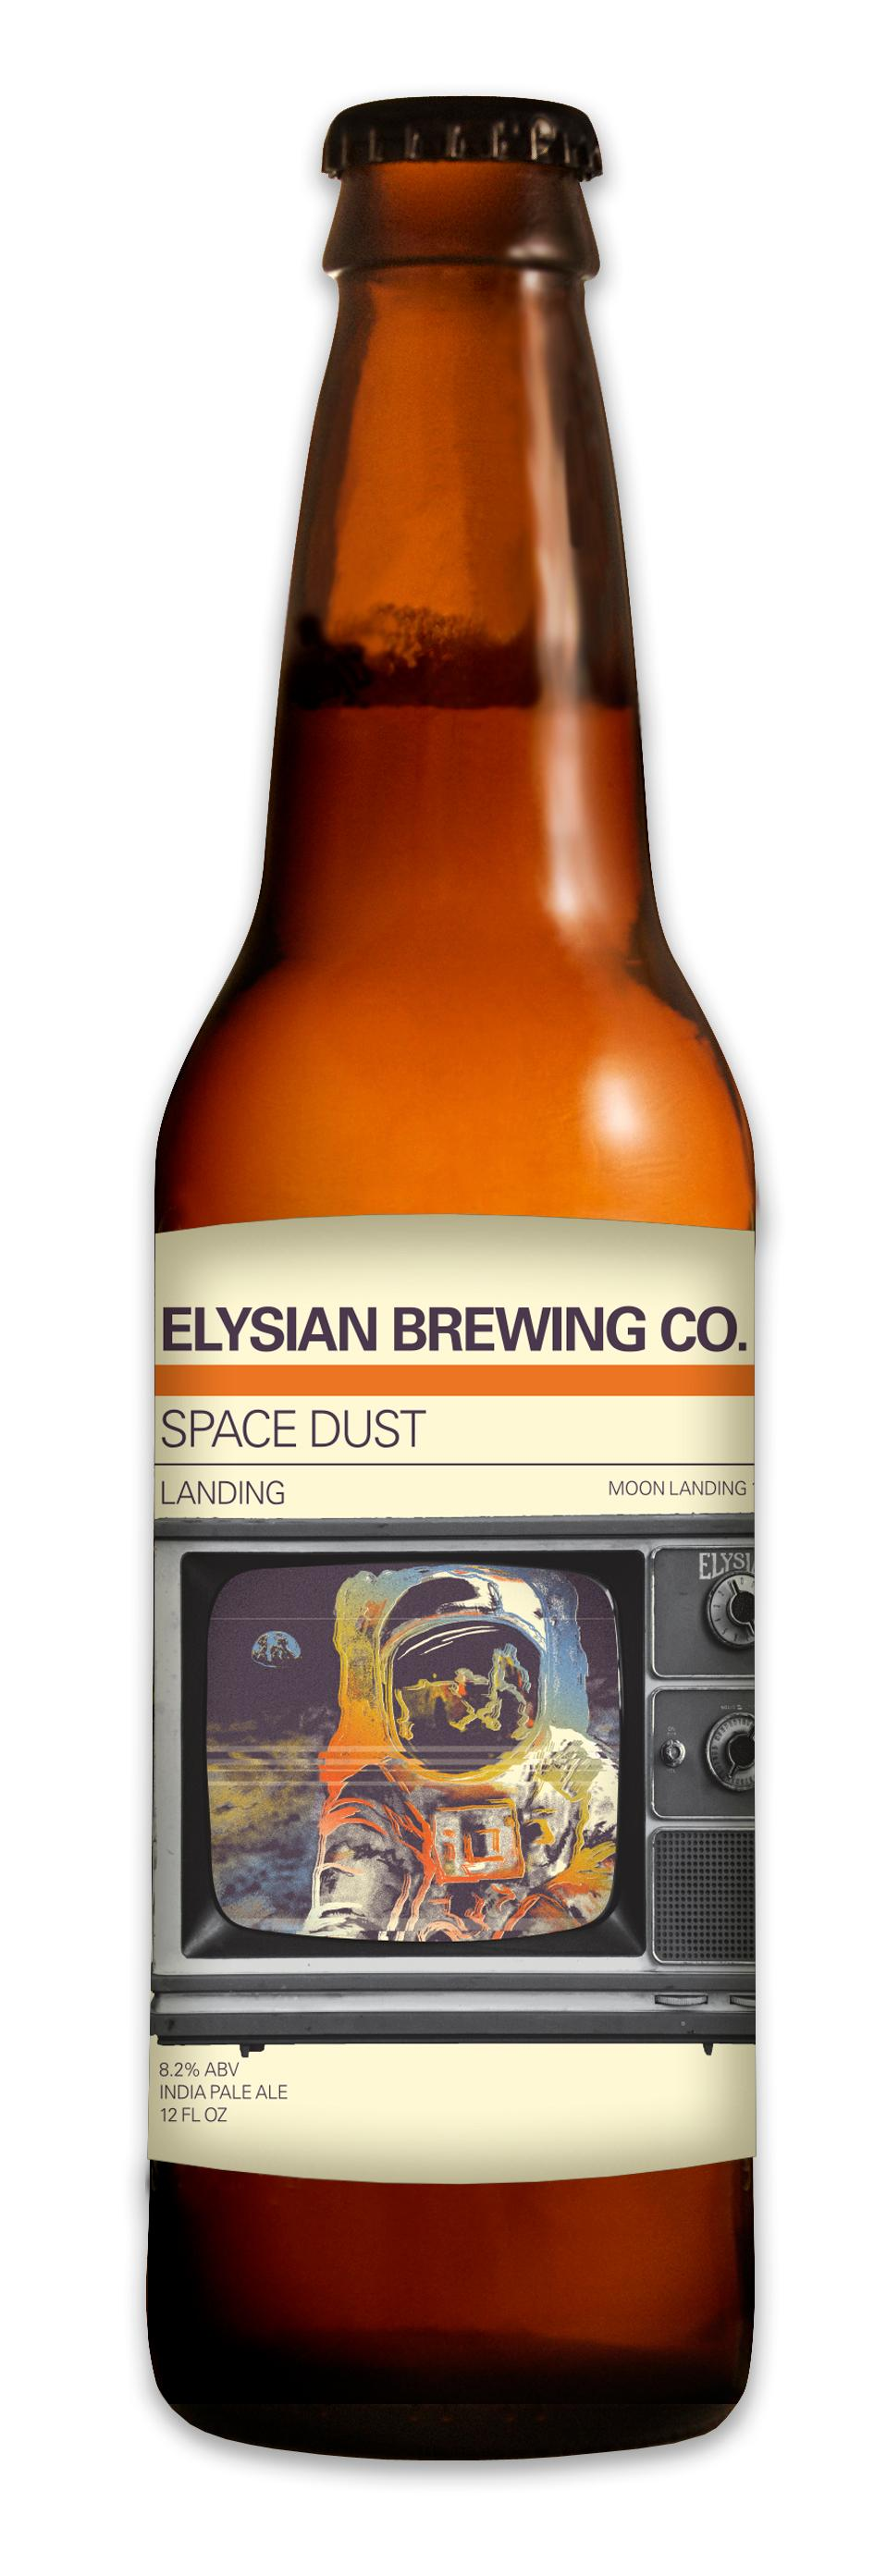 "Saturday, July 20, 2019 marks the 50th anniversary of the Apollo 11 moon landing and the celebrate the historic event, Elysian Brewing is releasing a ""specifically-designed Space Dust IPA 6-pack featuring three unique labels commemorating each phase of the voyage."" Labels will include Lift-off, landing and return! You can find these limited-edition retro bottles in stores now! (Image courtesy of Elysian Brewing)."